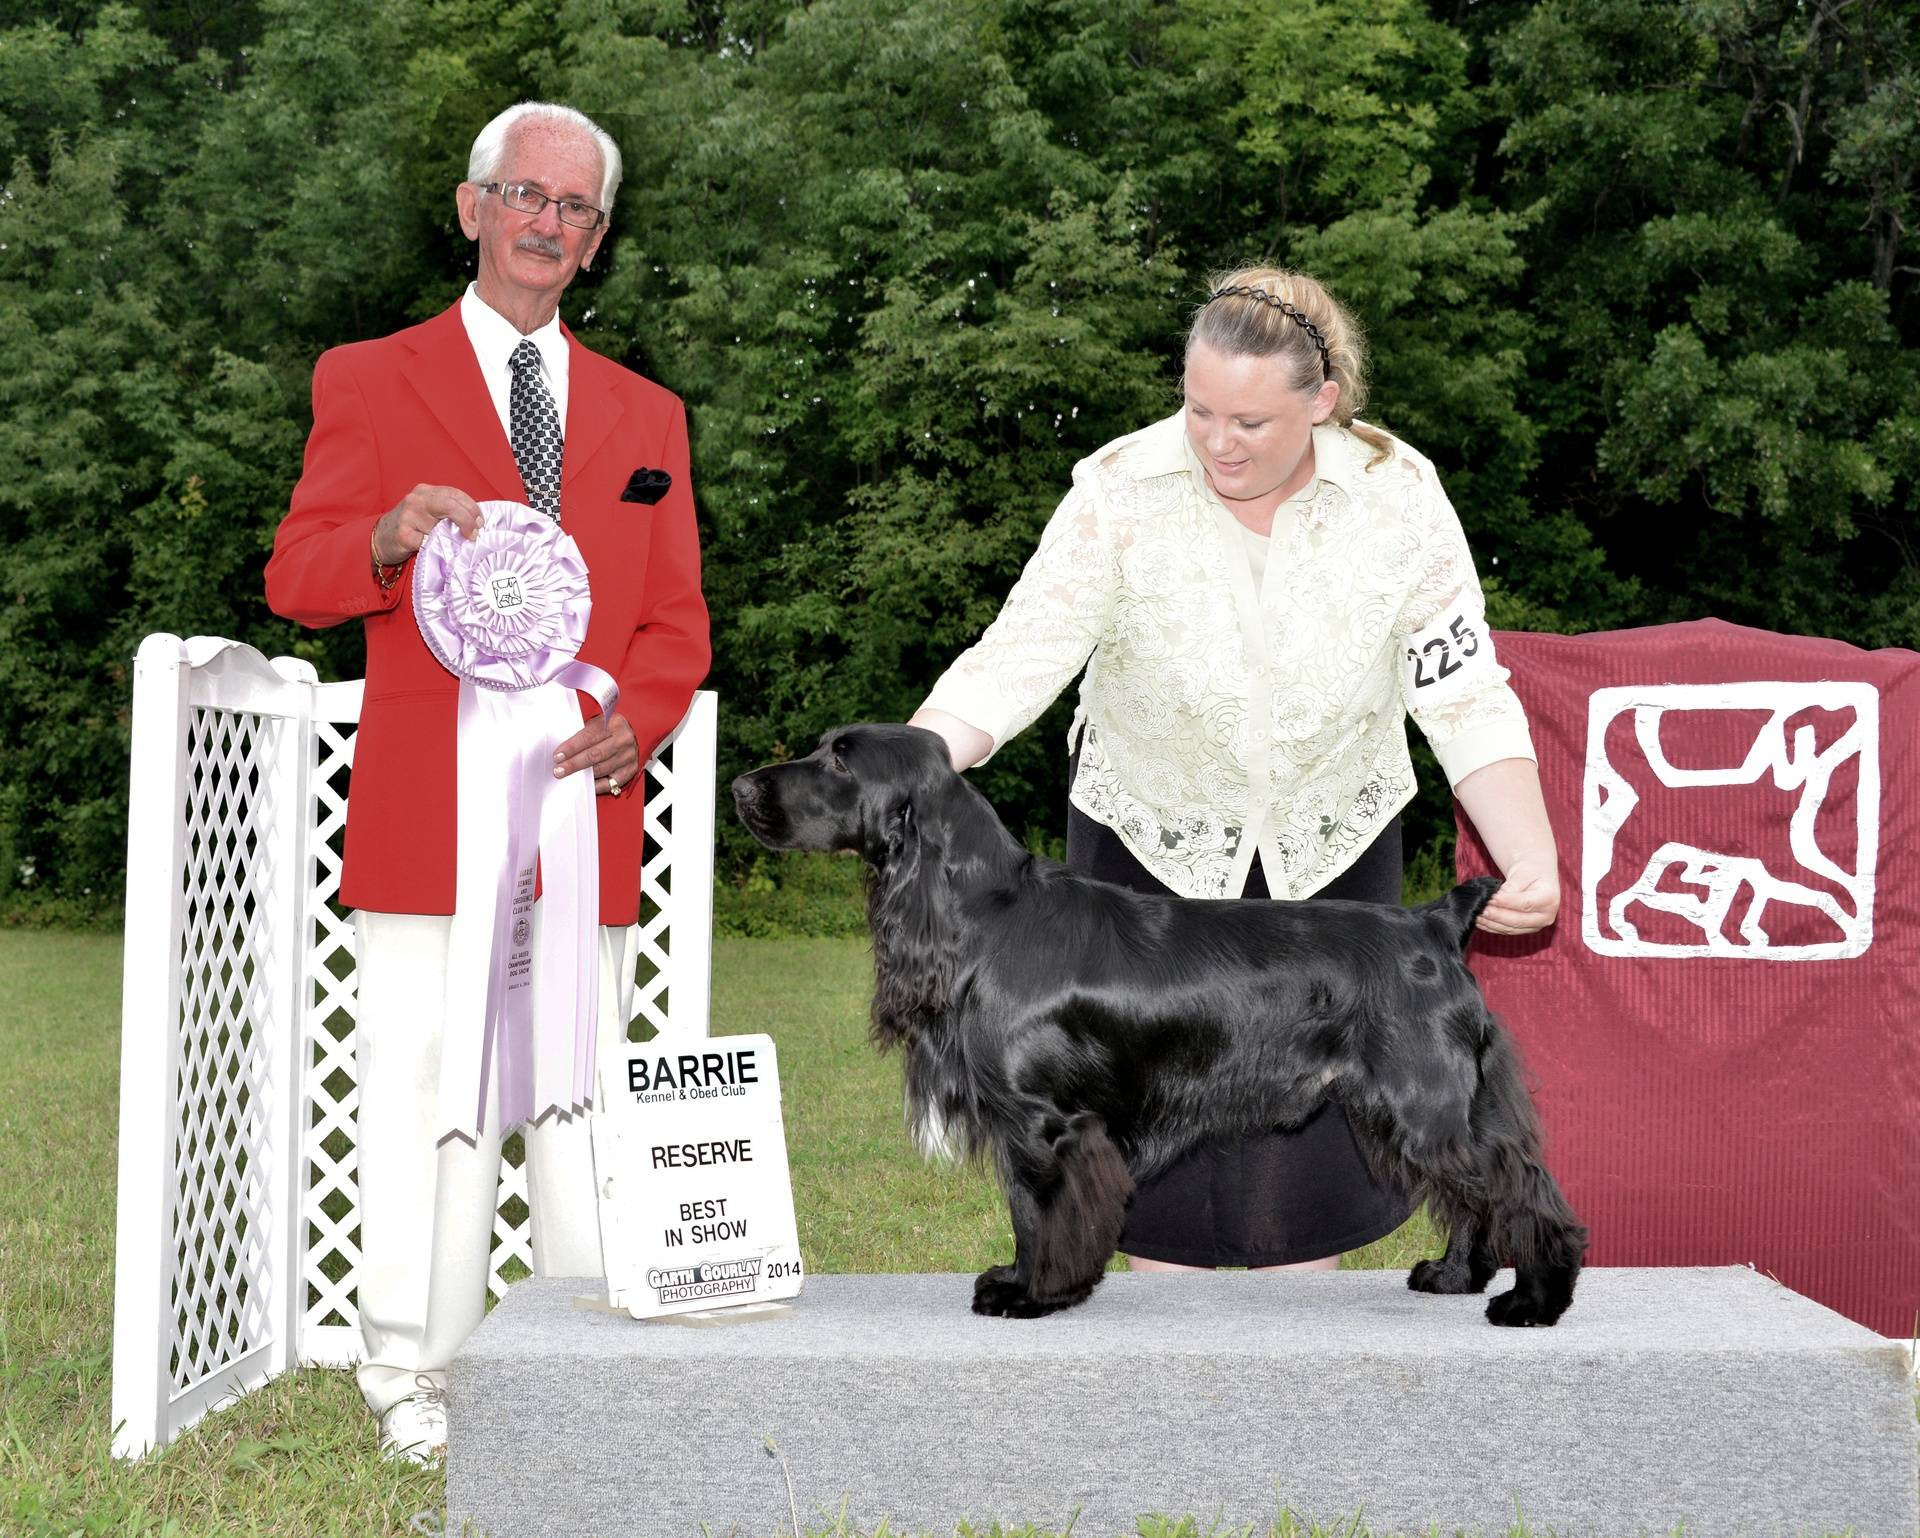 Monday, August 4 - Reserve Best in Show